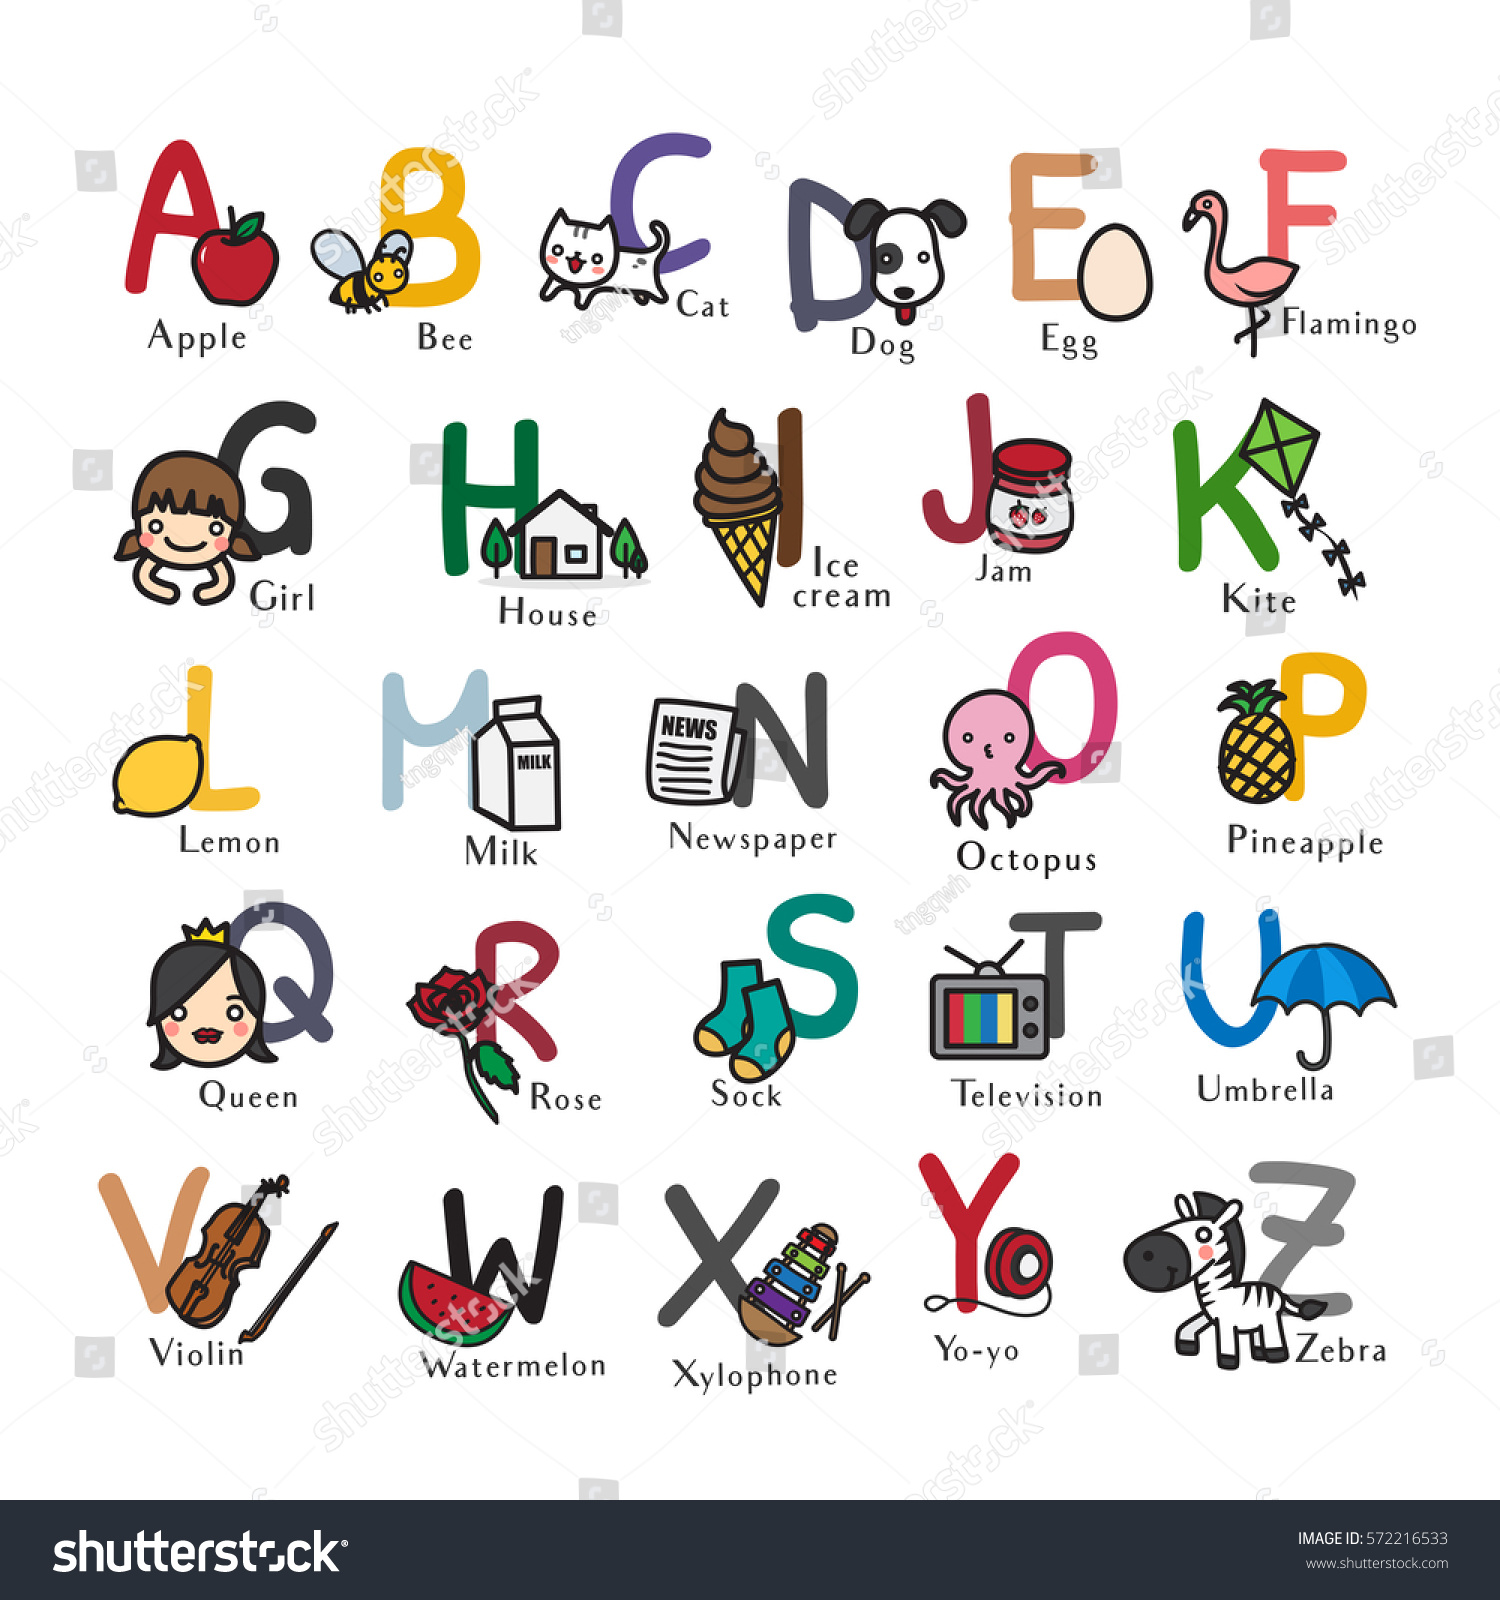 ABC Alphabet With Cute Cartoon For Kids Hand Drawn Vector Illustration Isolated On White Background